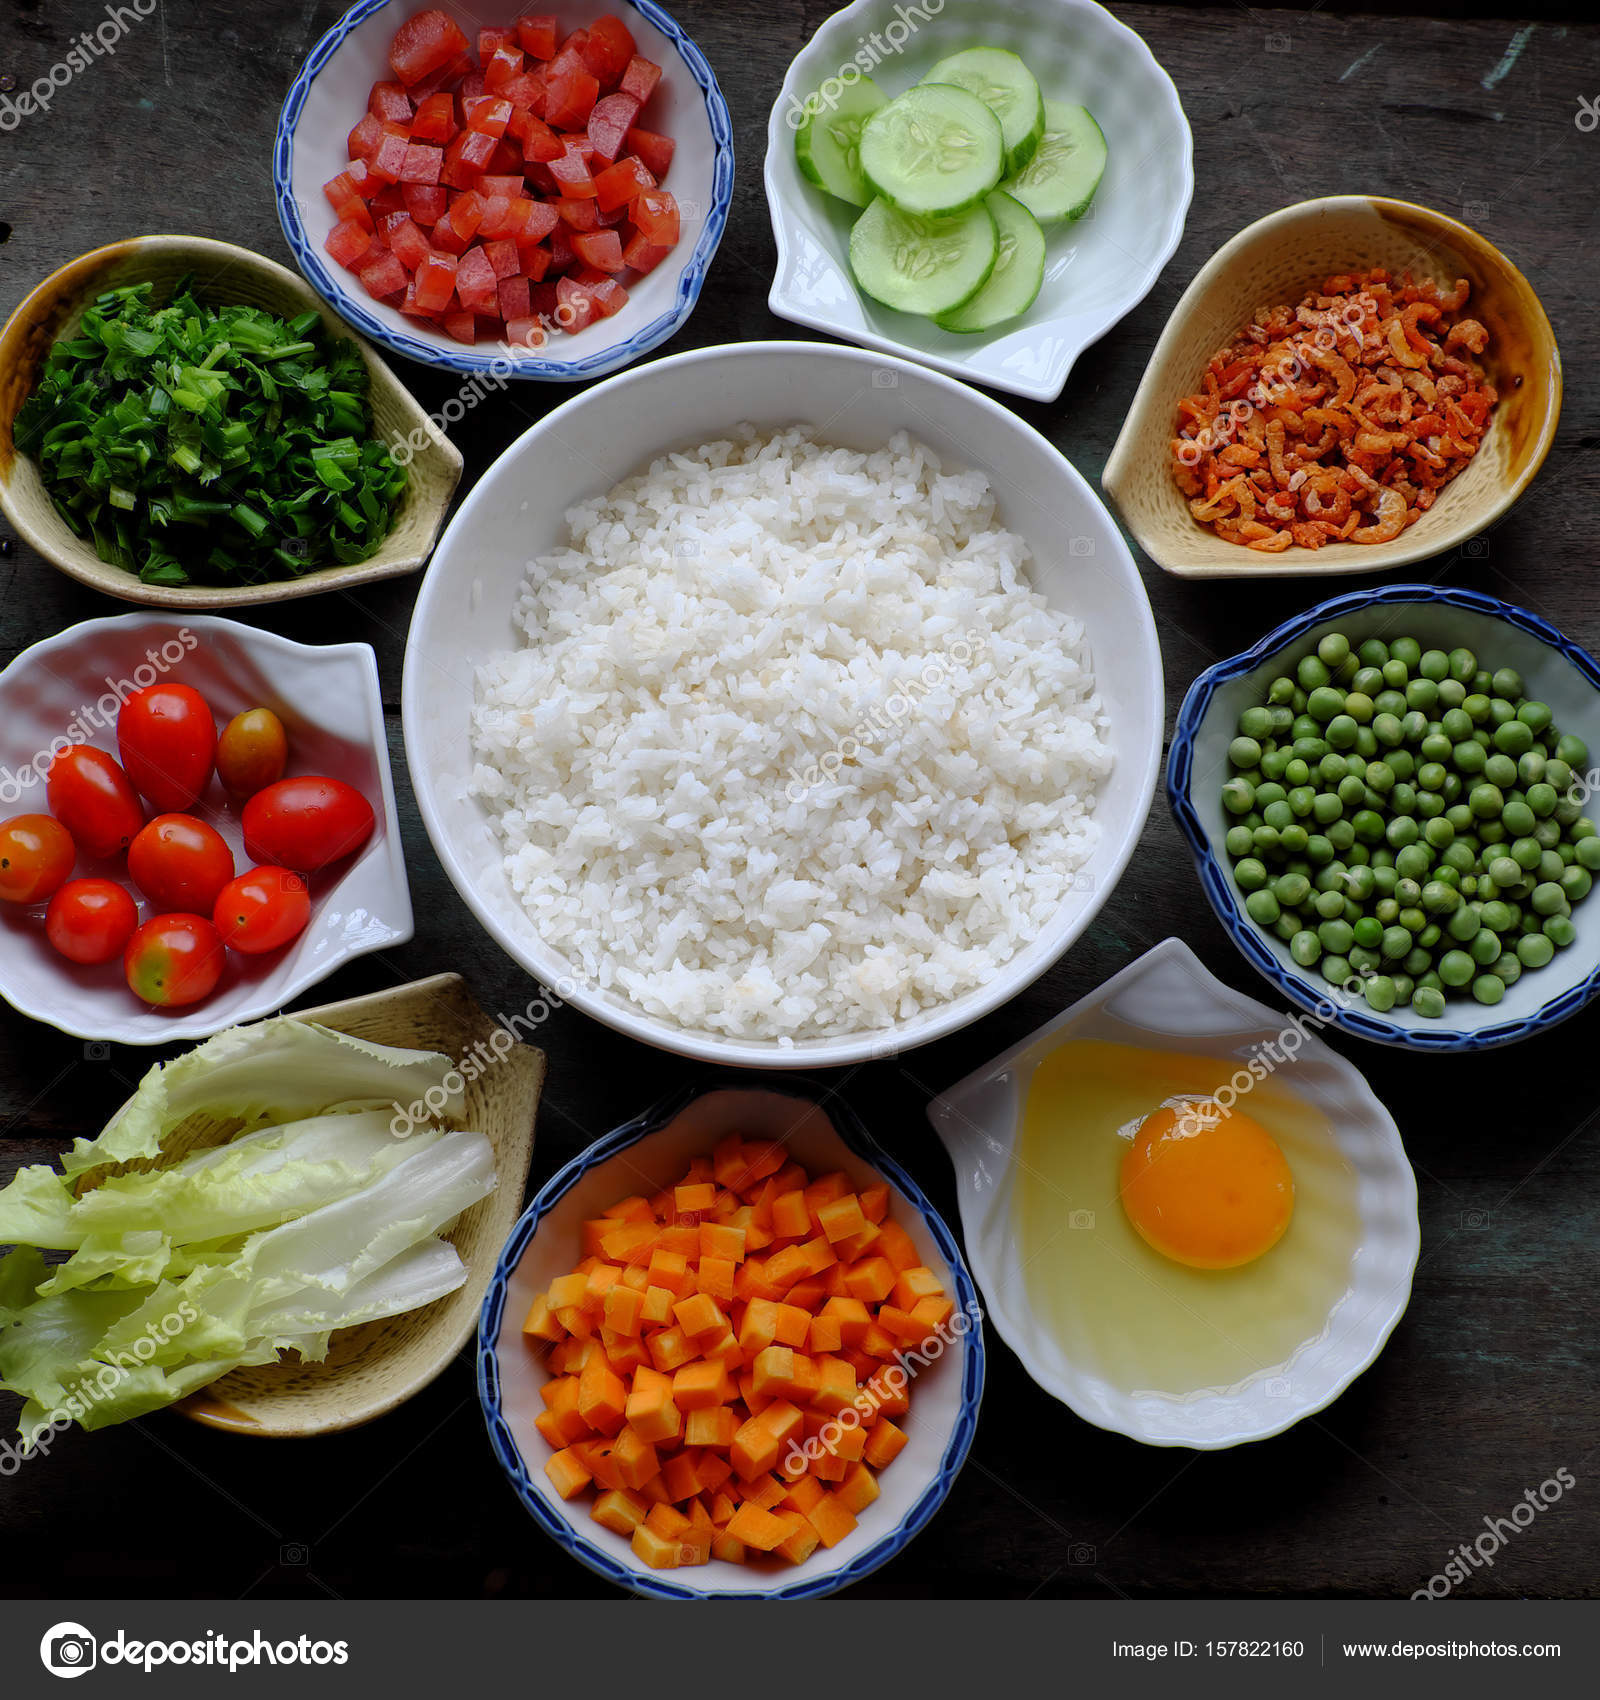 Food material for fried rice stock photo xuanhuongho 157822160 vietnam food fried rice make from rice egg sausage dried shrimp bean cucumber tomato carrot and scallion processing with colorful food material on ccuart Images